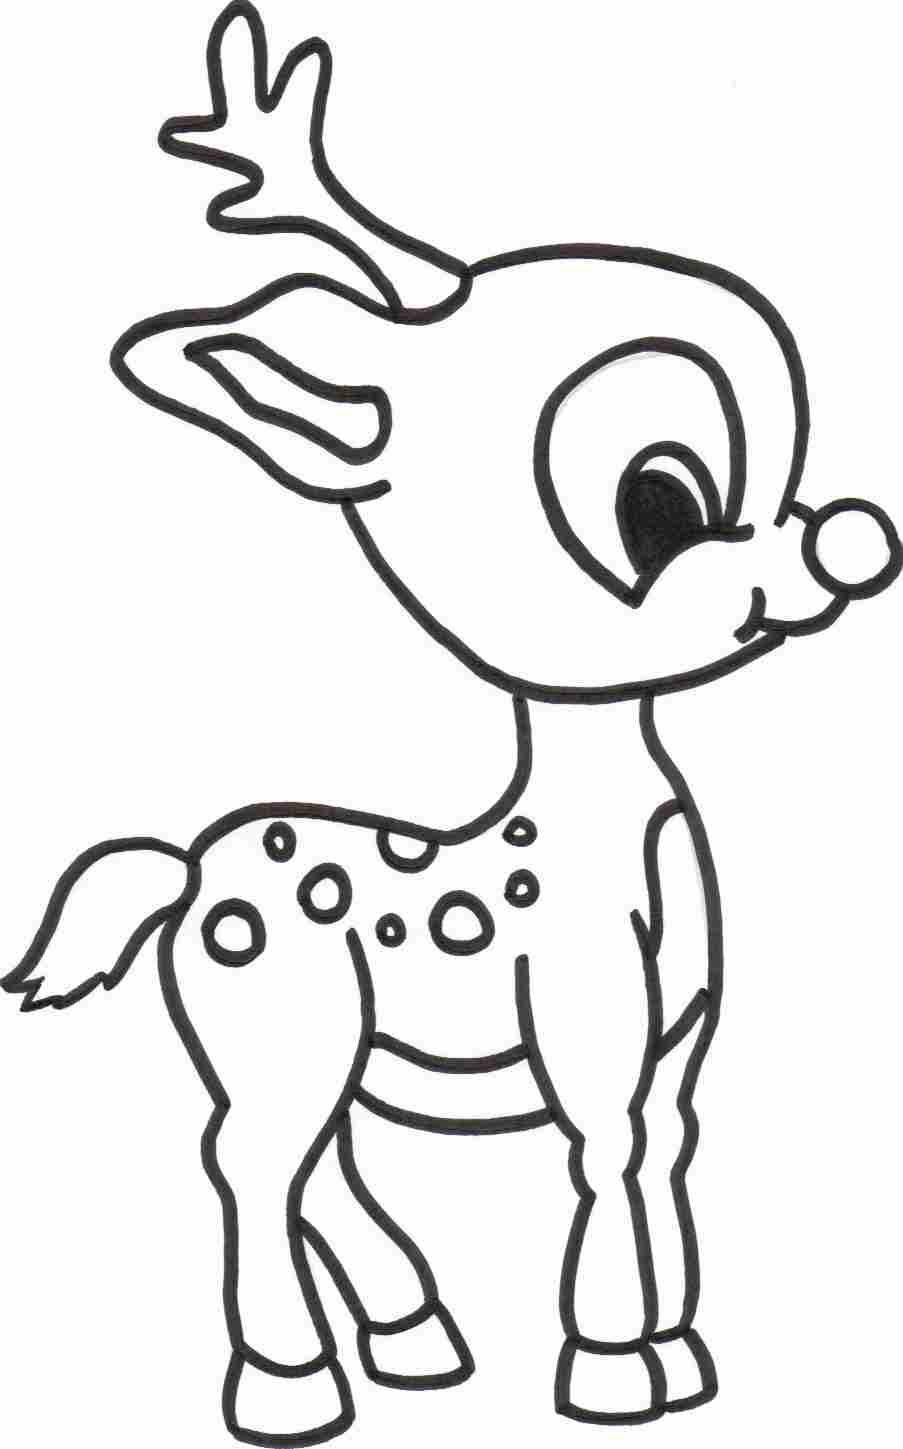 Christmas Reindeer Coloring Sheets With Free Printable Pages For Kids Sketch Pinterest